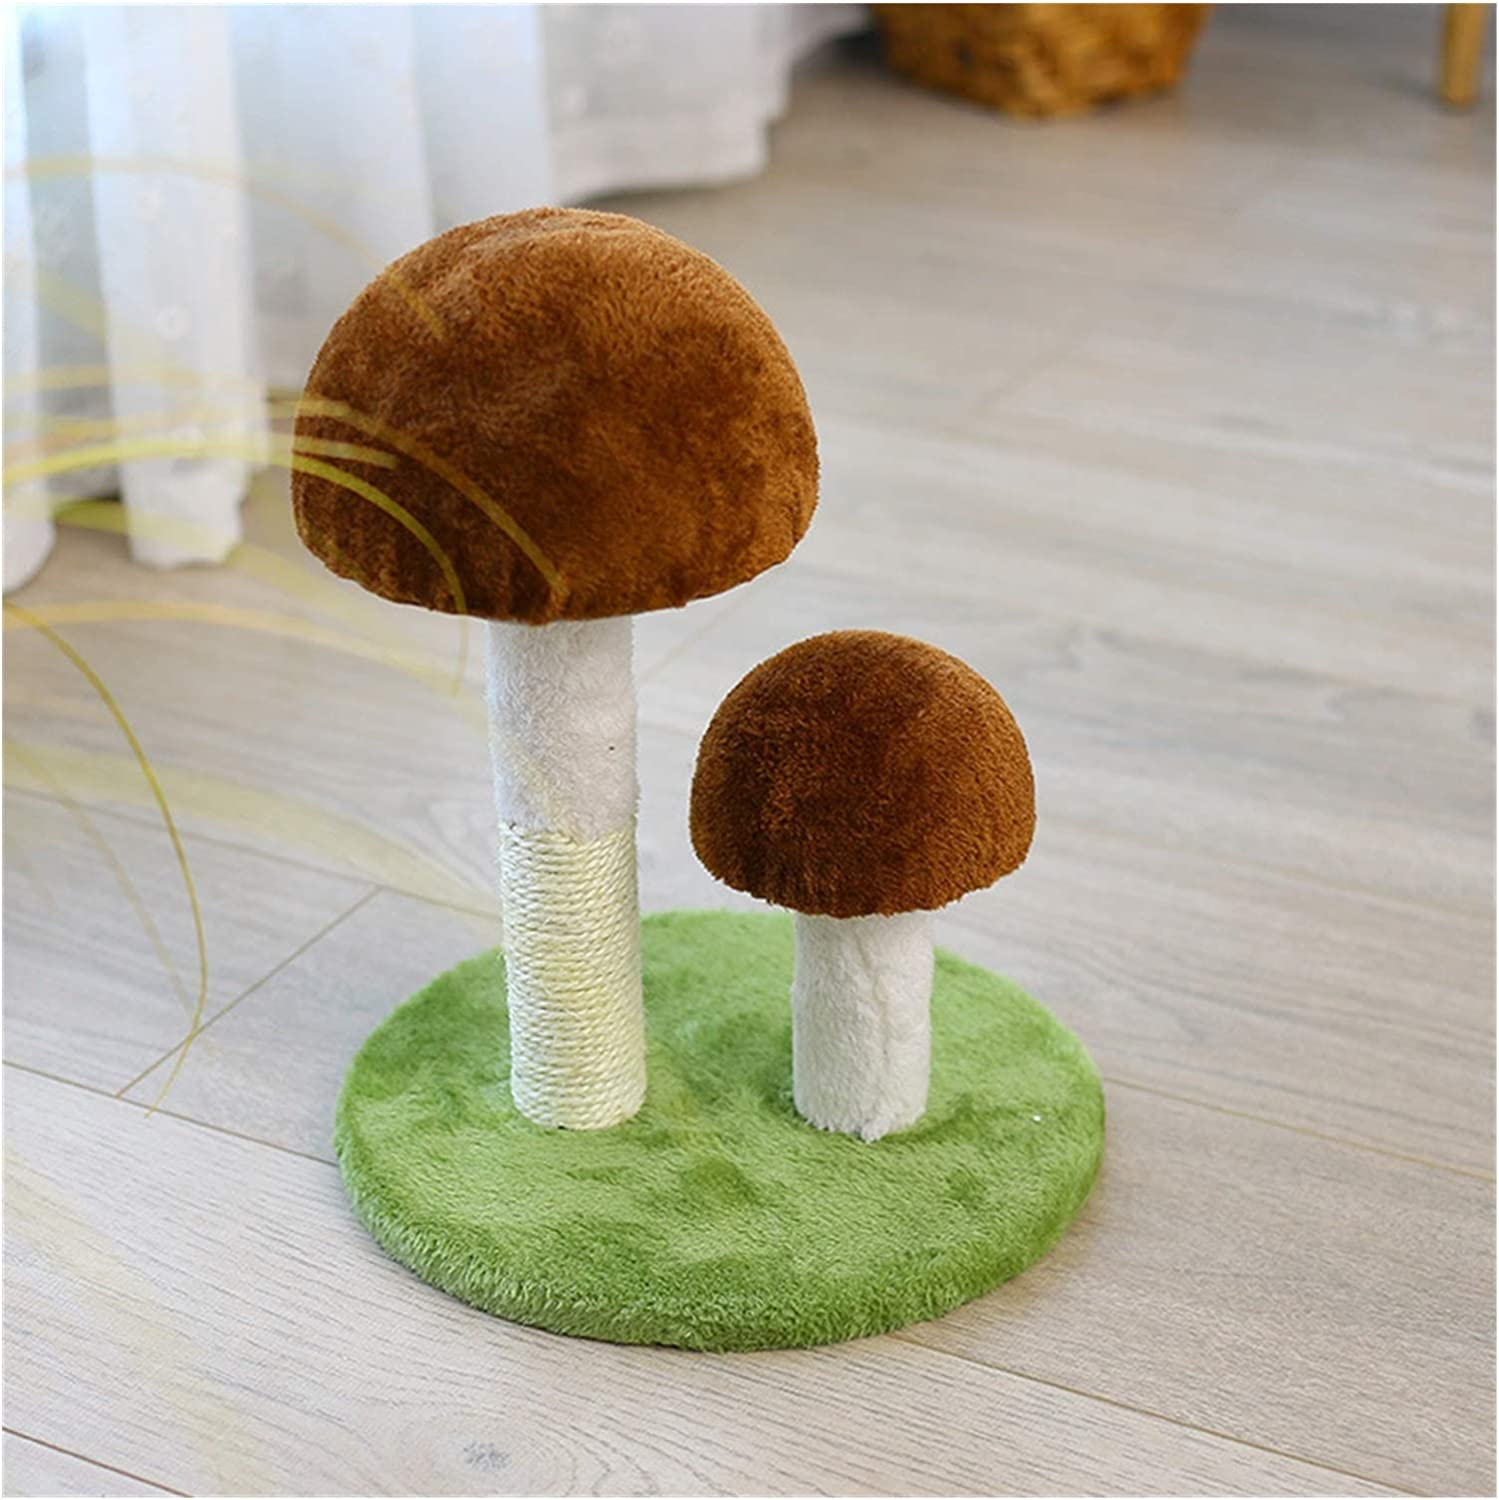 YOUZTJZ Cat Tree Climbing Animer and price revision Daily bargain sale Frame Toy Grab Mushroom Shape